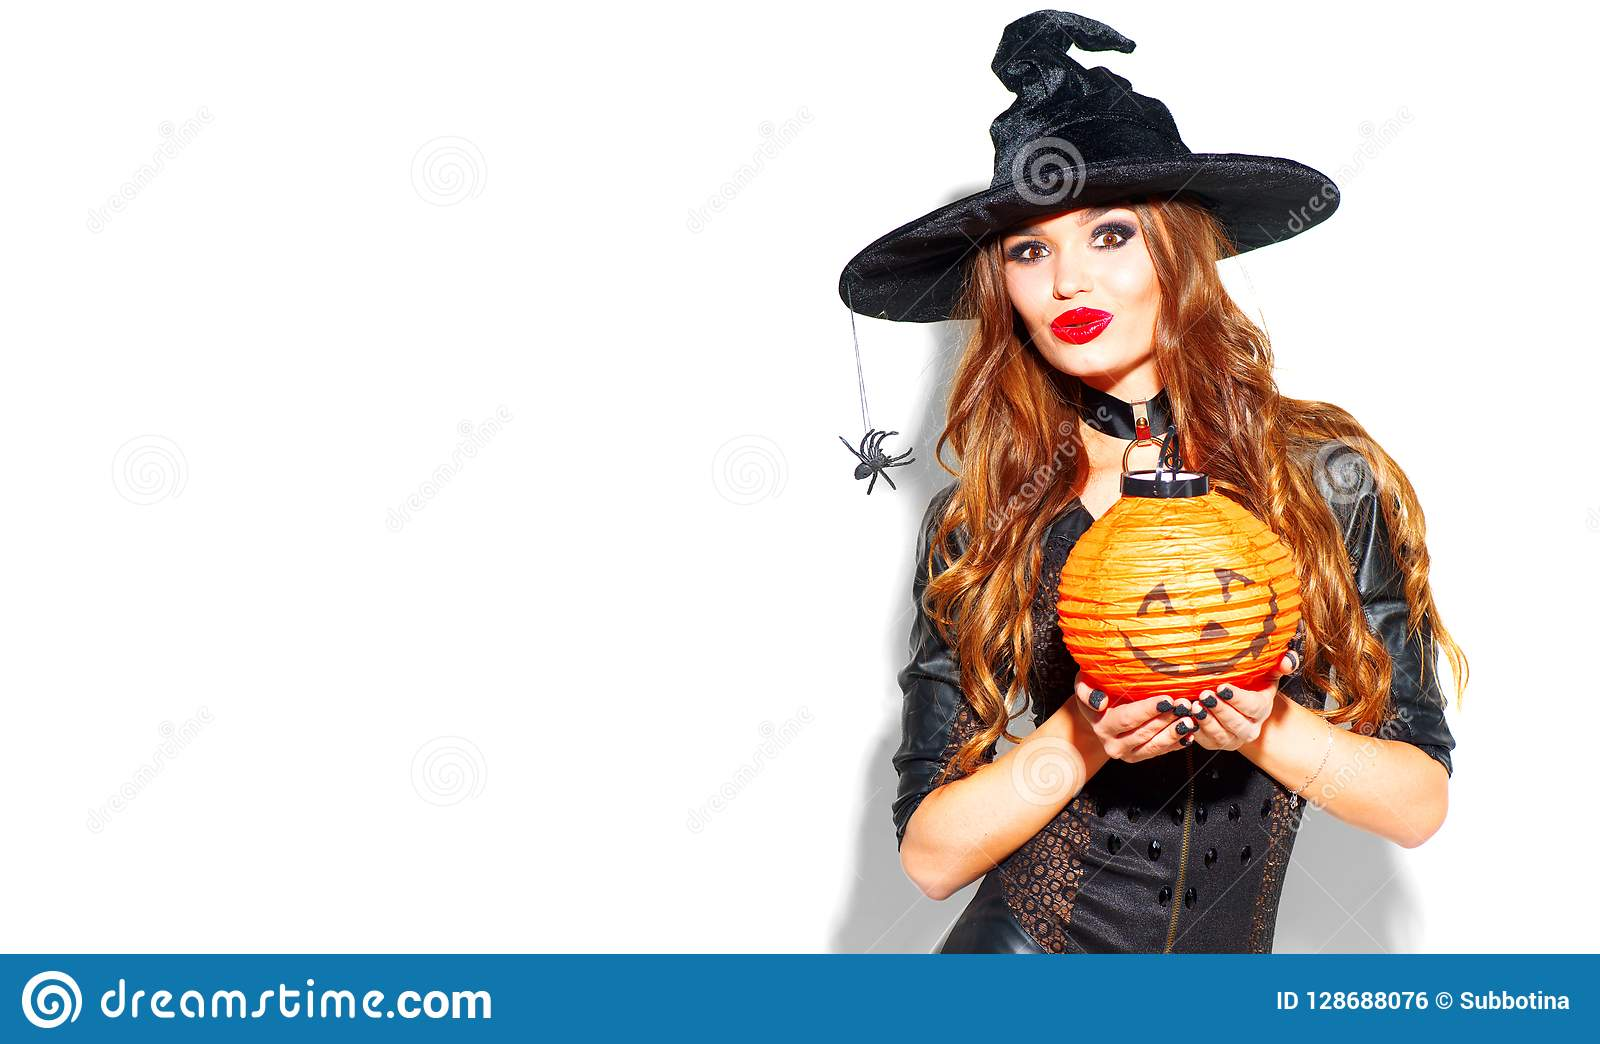 Halloween. witch with bright holiday makeup. Beautiful young woman posing in witches costume with pumpkin lantern